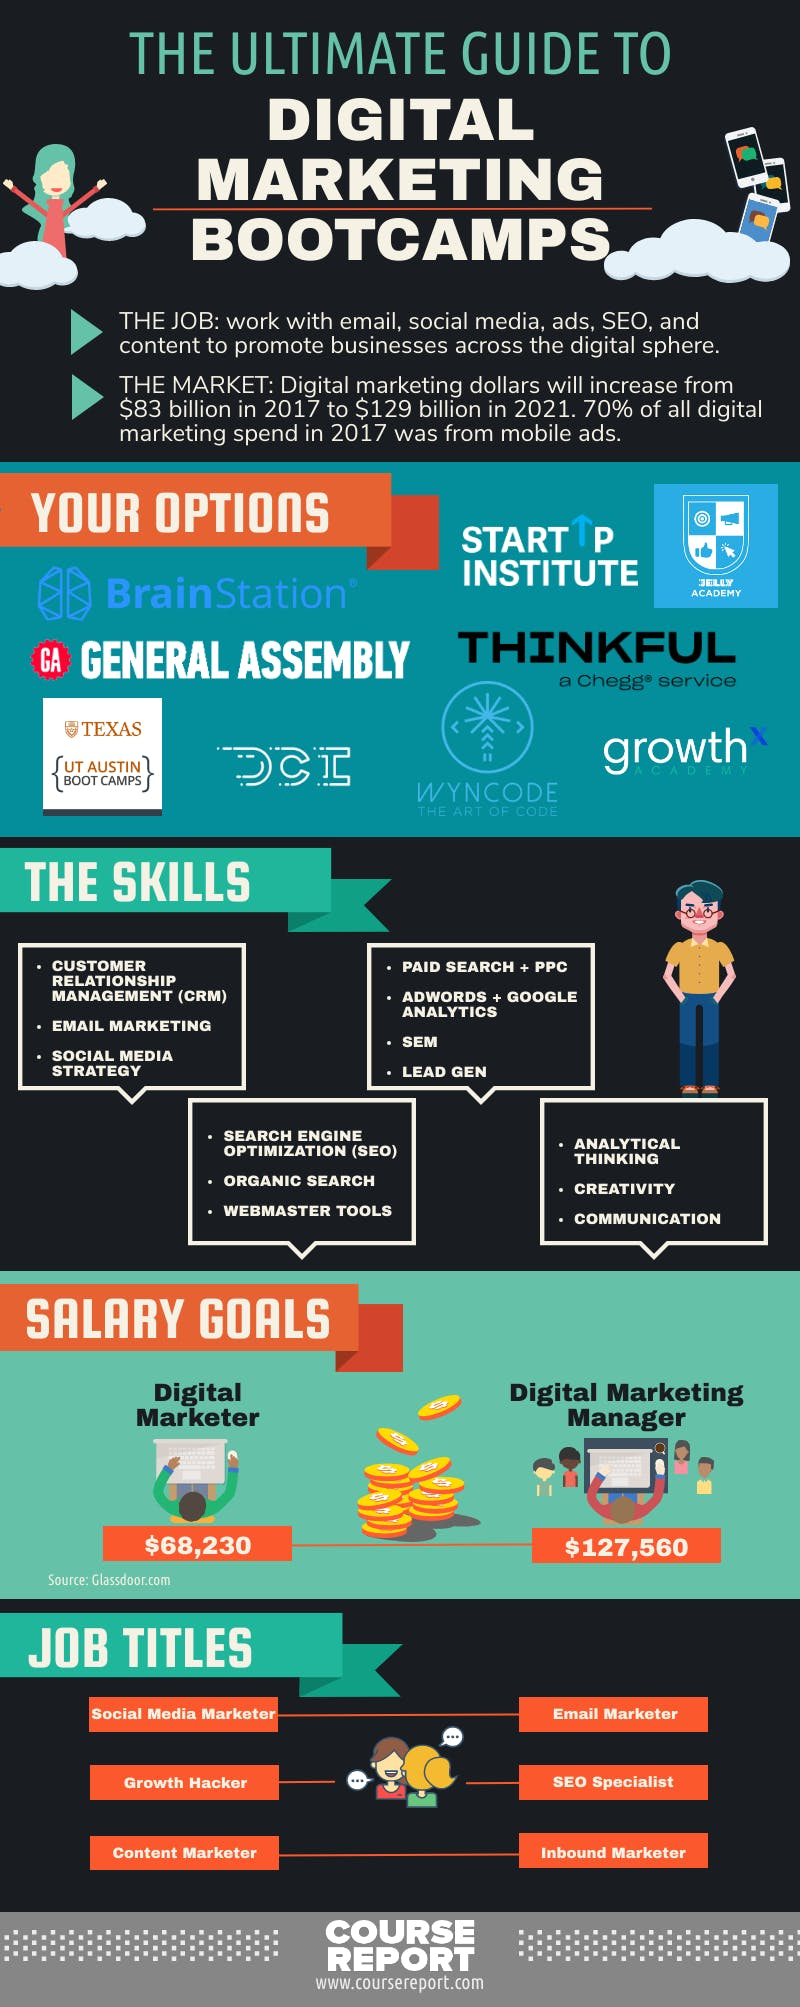 Guide to digital marketing bootcamps infographic updated